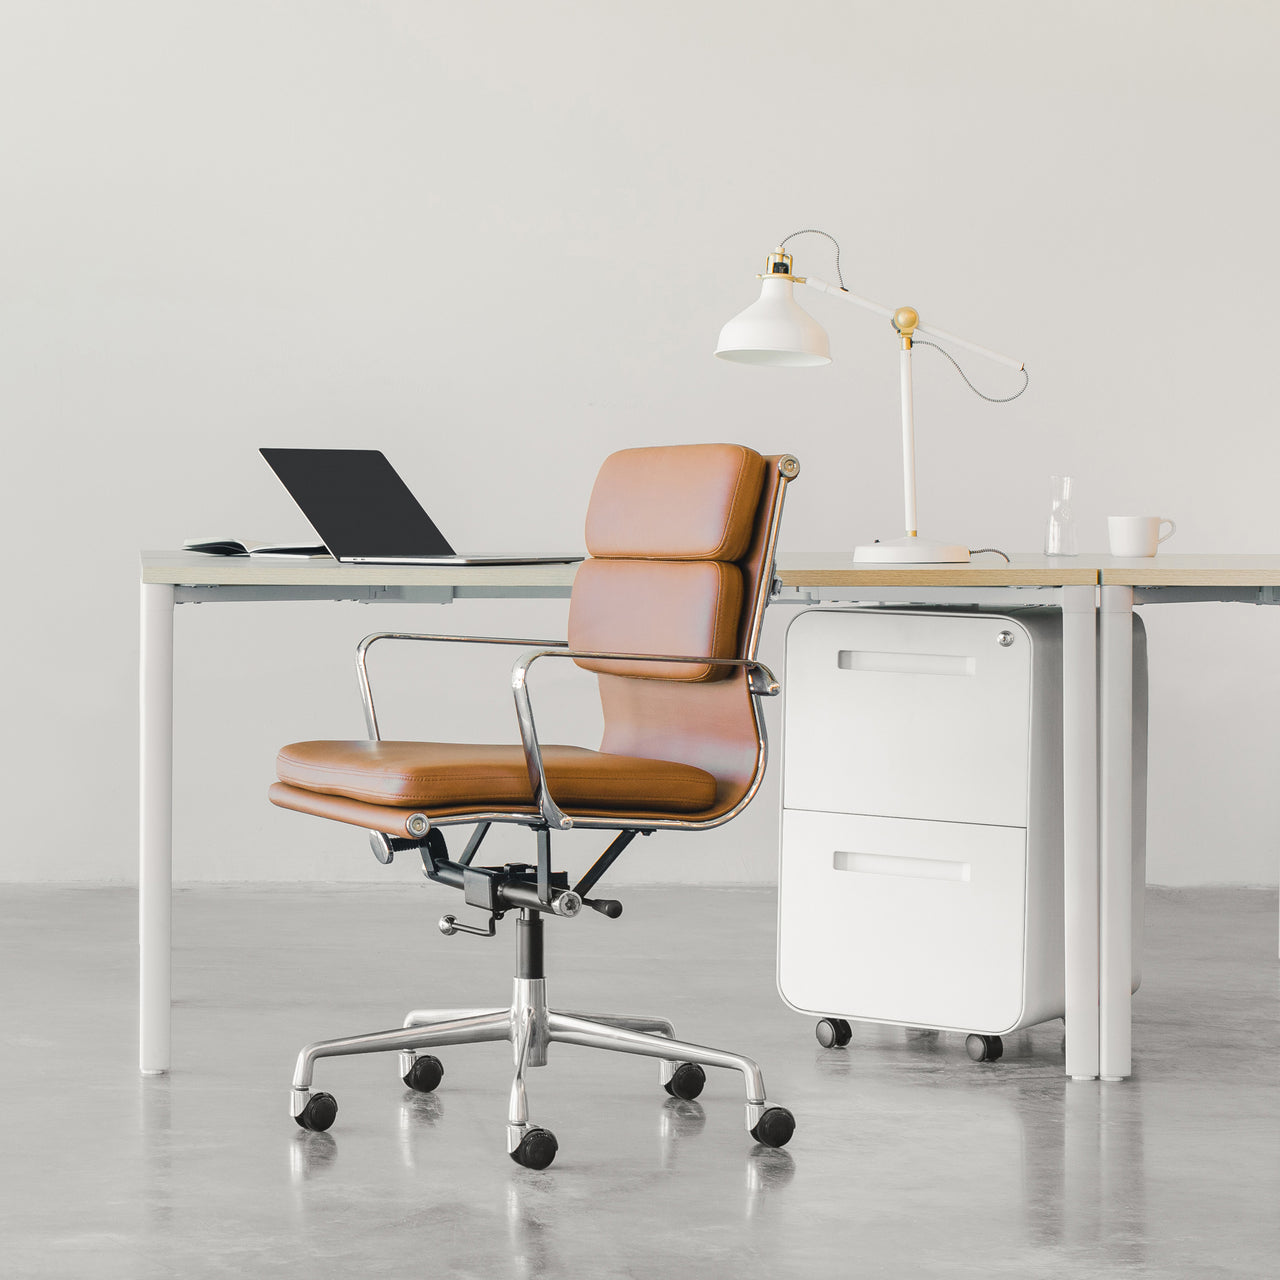 SOHO Soft Pad Management Chair (Brown)